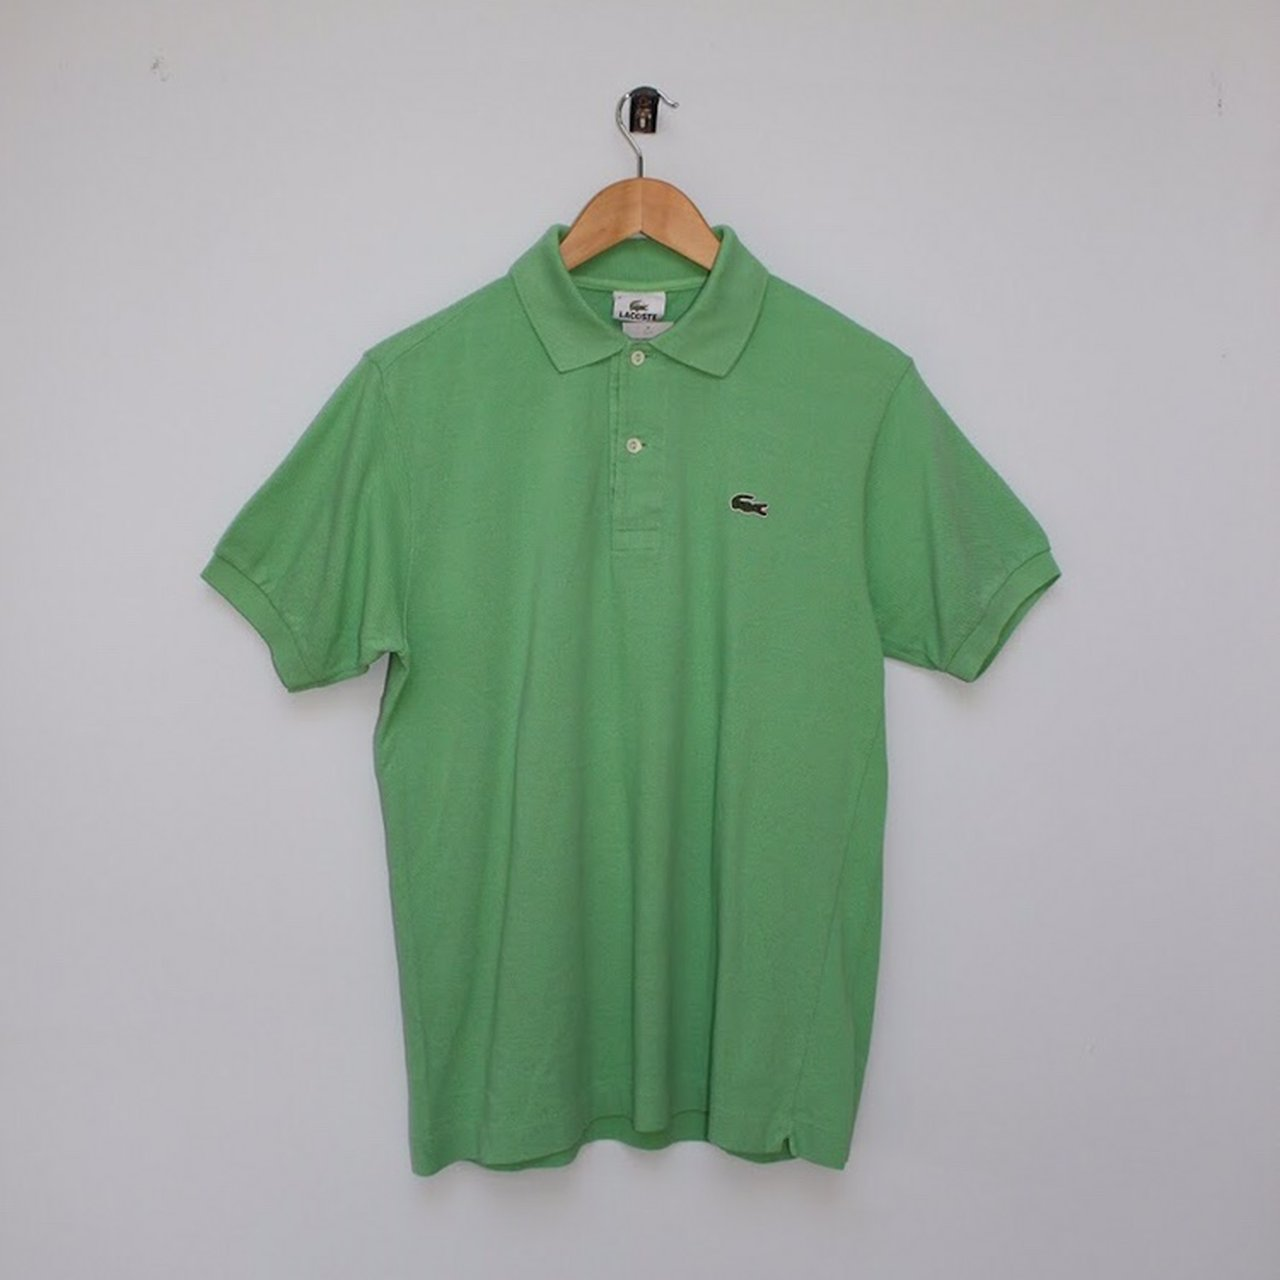 c9d75da6f17 Vintage Like Green Lacoste Polo